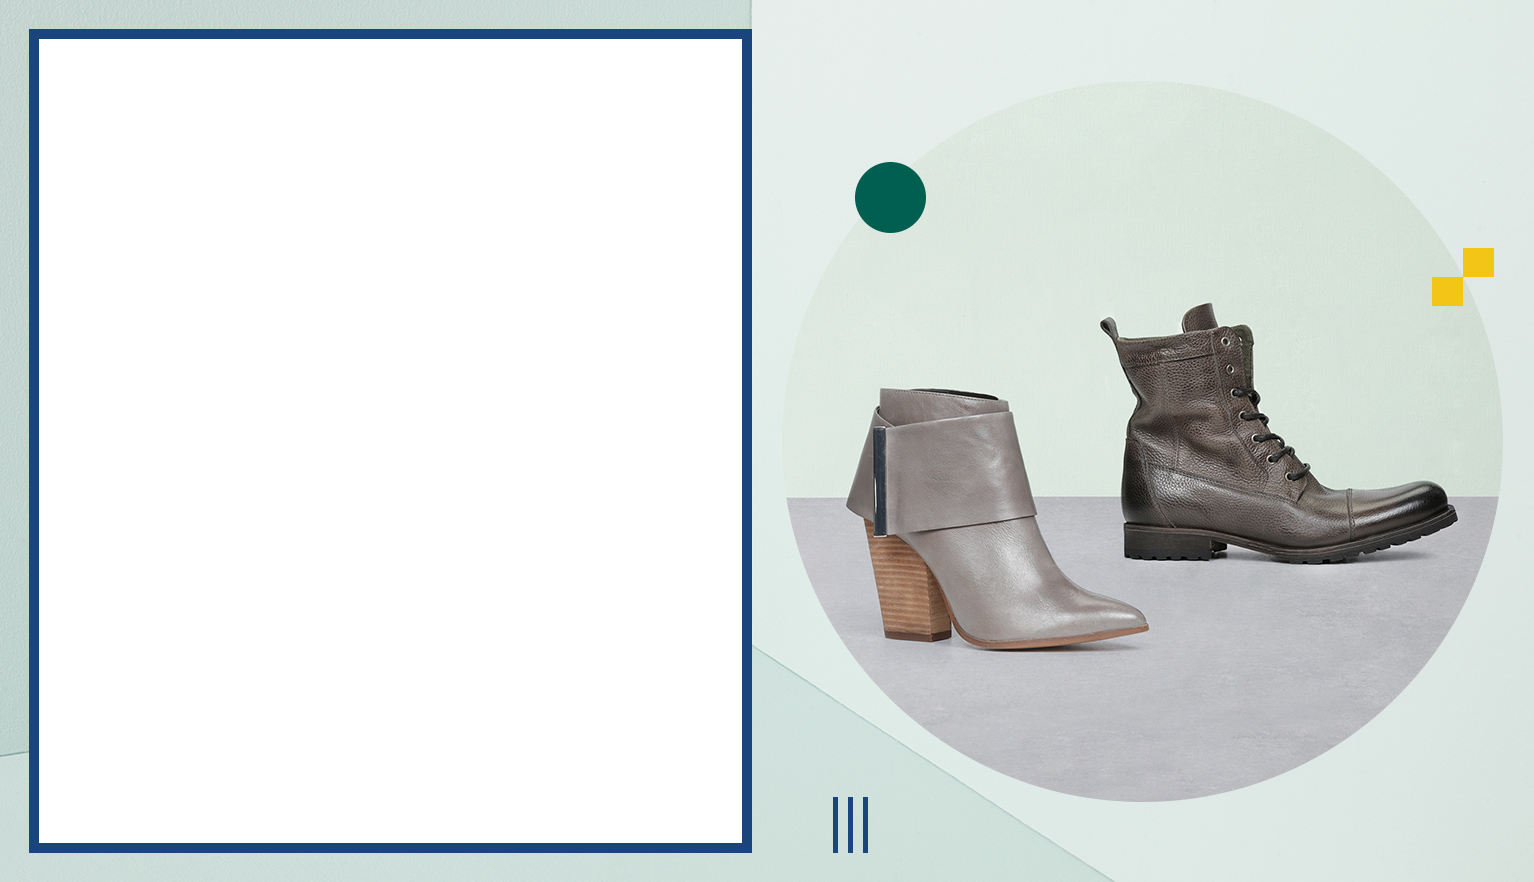 ALDO | Shoes, Boots, Sandals, Handbags & Accessories